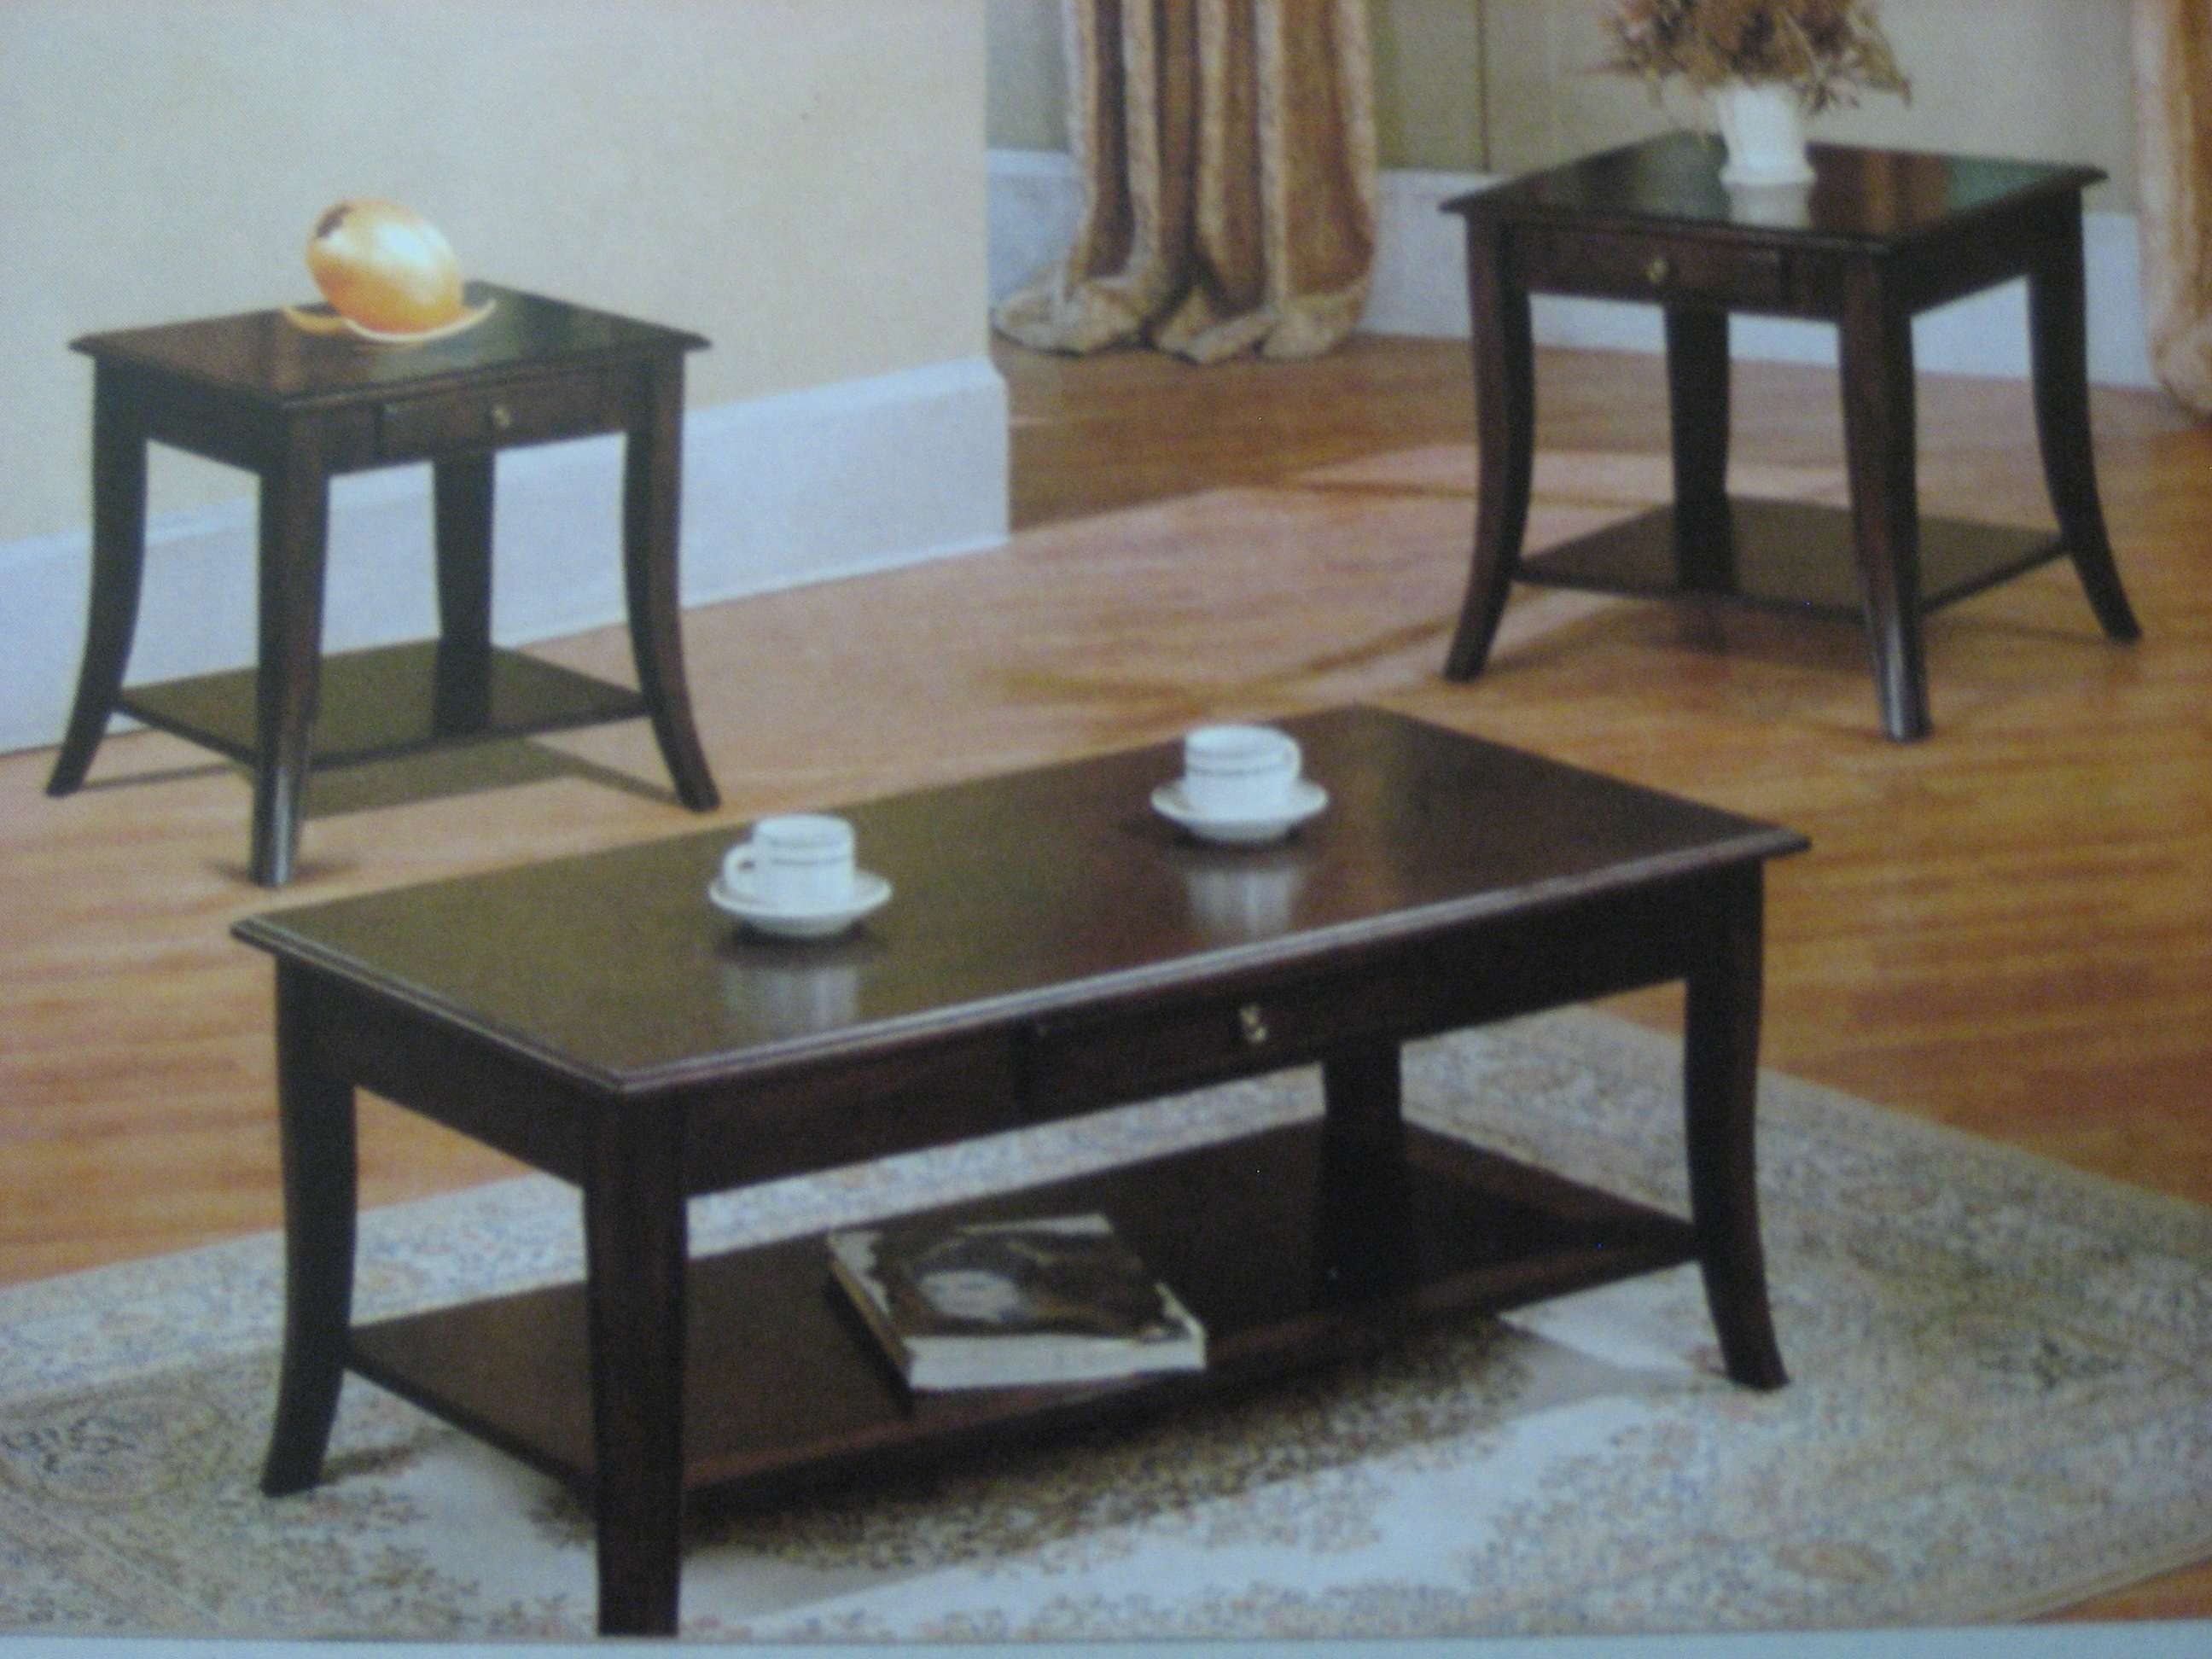 Fashionable Cherry Wood Coffee Table Sets Throughout Coffee Table : Wonderful Glass For Coffee Table End Table Sets (View 5 of 20)